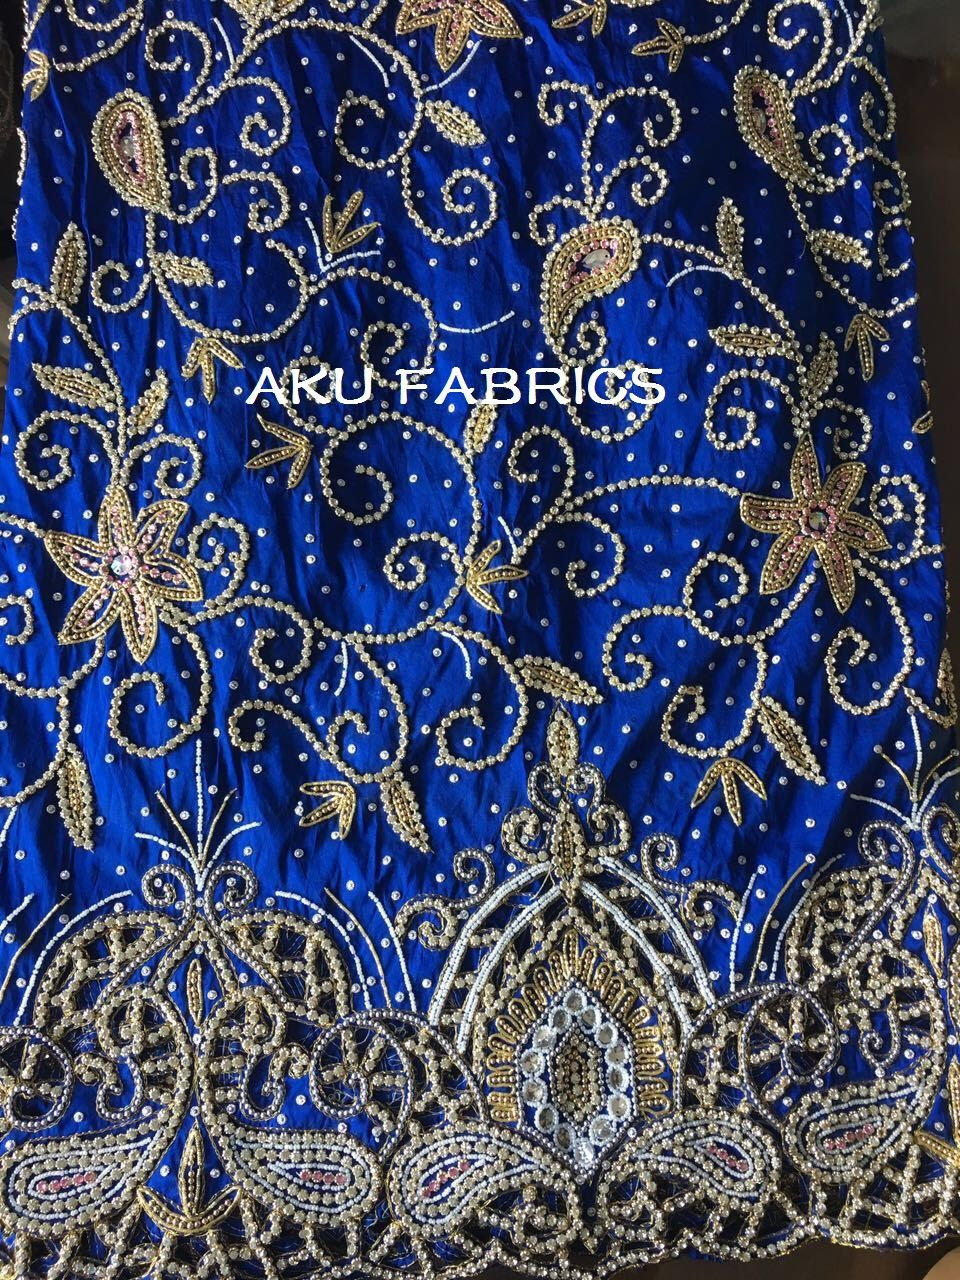 c1a54cd501d3b8 ROYAL BLUE Heavy Beaded Stone Silk Indian George Fabric Heavy Beaded  Nigerian George Lace with Blouse